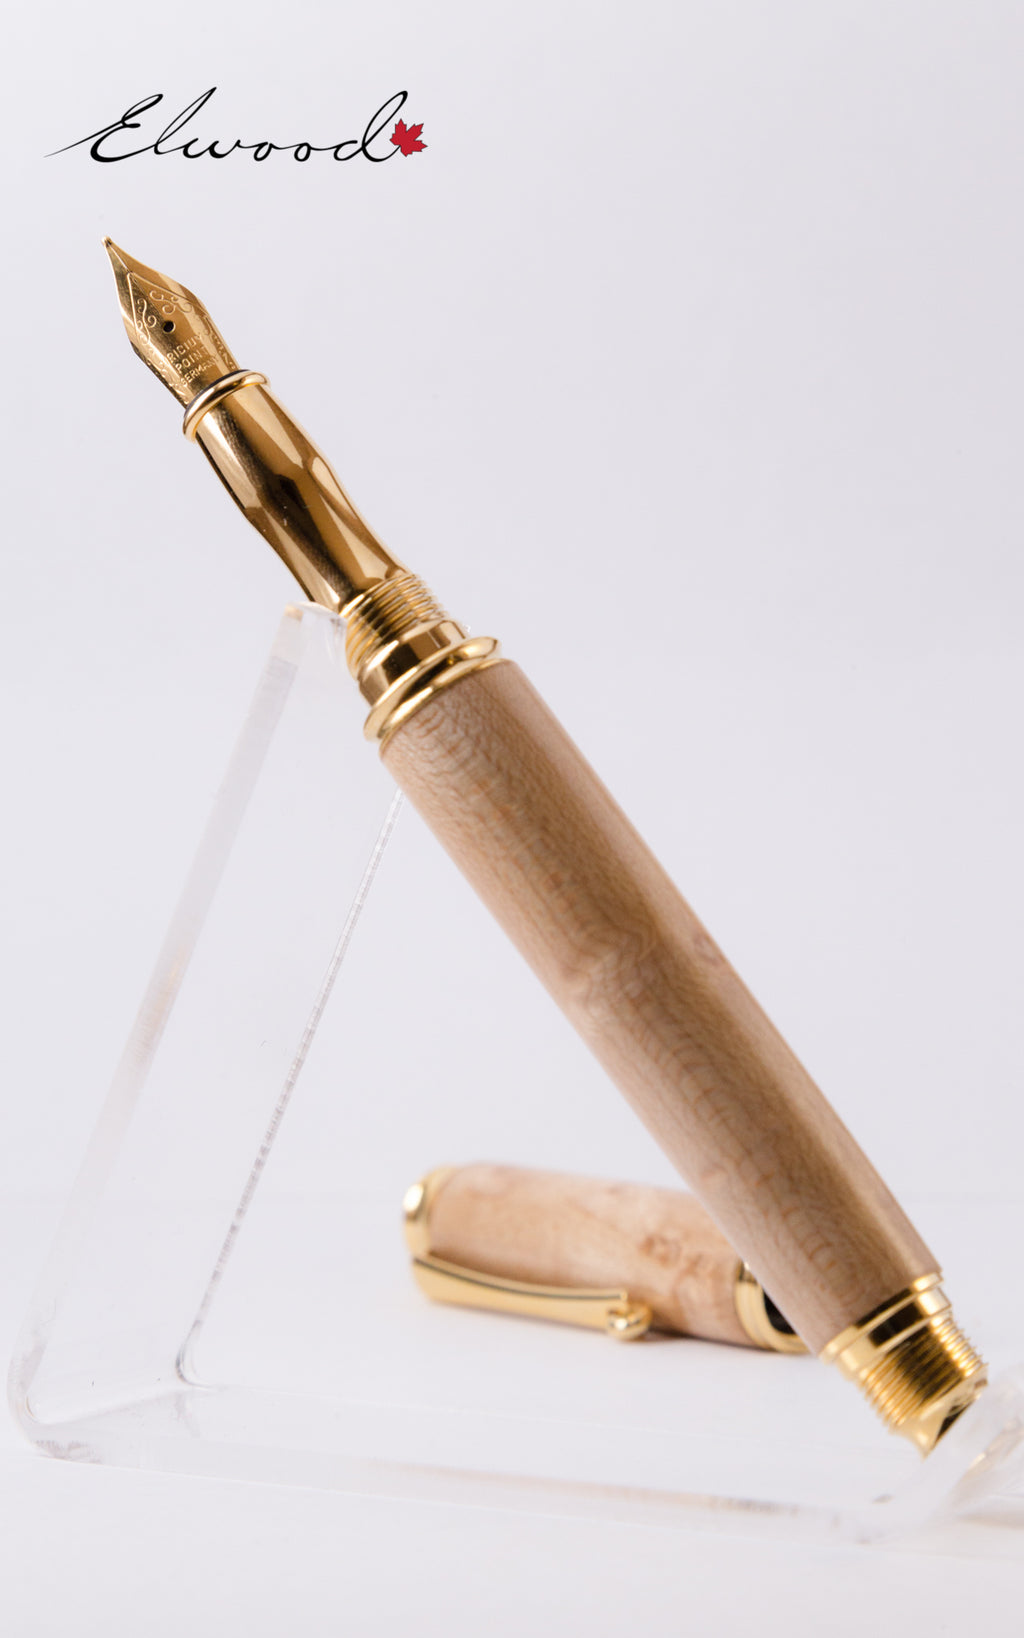 Virage Fountain Pen open cap slanting left with Elwood Watermark